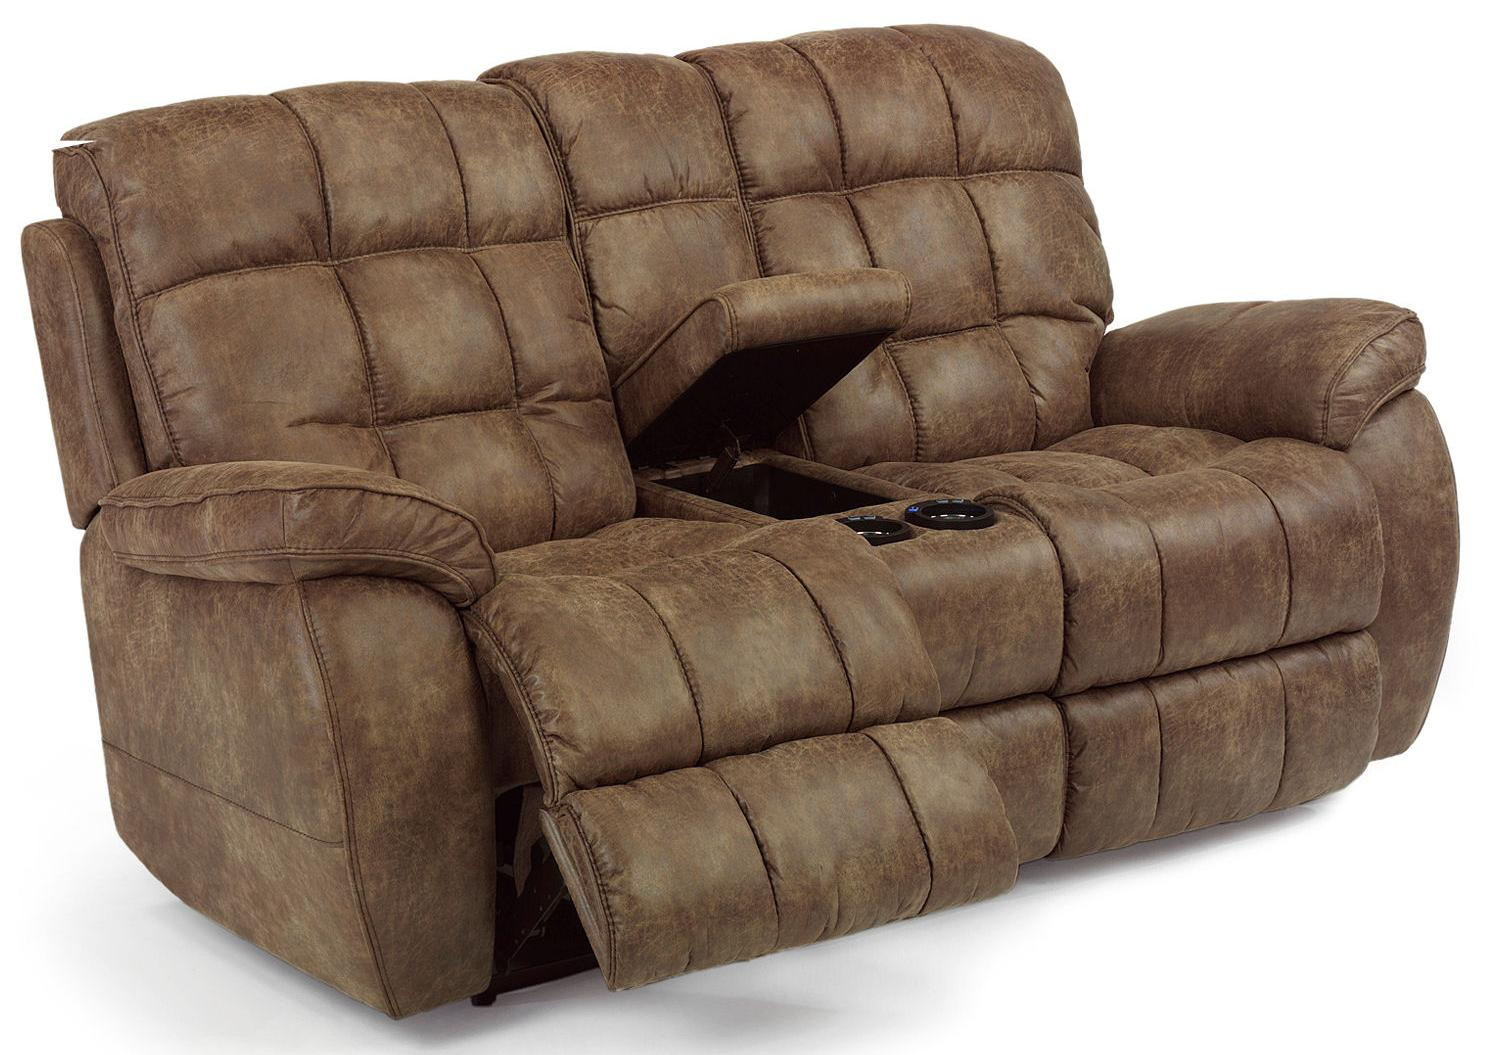 Flexsteel Latitudes - Nashua Power Loveseat with Console - Item Number 1449-604P-  sc 1 st  Rooms and Rest & Flexsteel Latitudes - Nashua Casual Power Reclining Loveseat with ... islam-shia.org